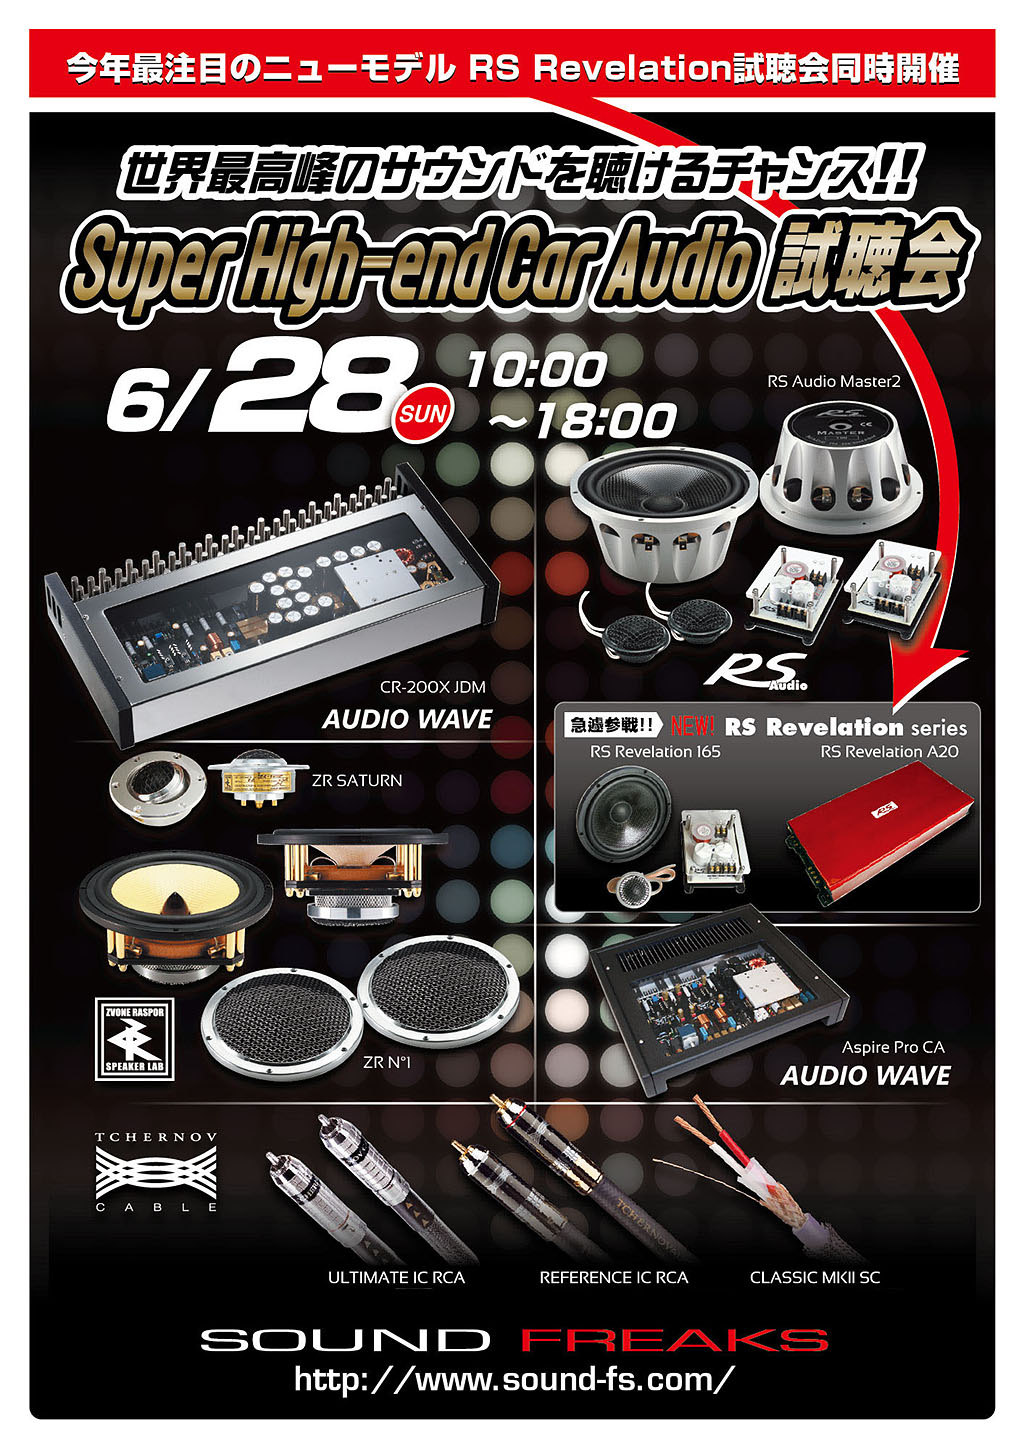 Super High-end Car Audio試聴会